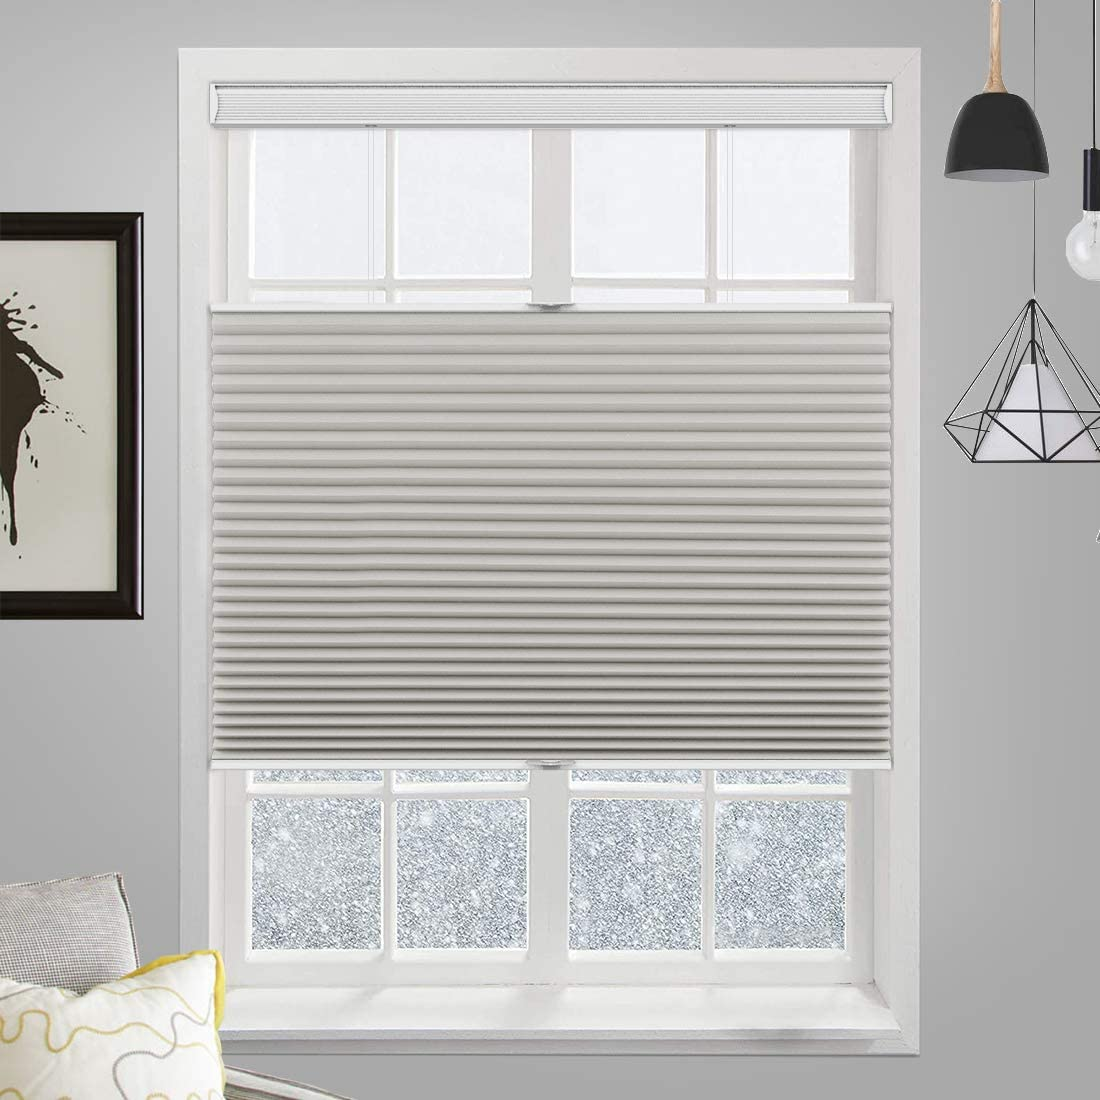 MiLin Cordless Blackout Cellular Honeycomb Shades Top Down Bottom Up, Fast Delivery Bedroom Kitchen Window Blinds and Shades Custom Cut to Size - Smoky Mossy